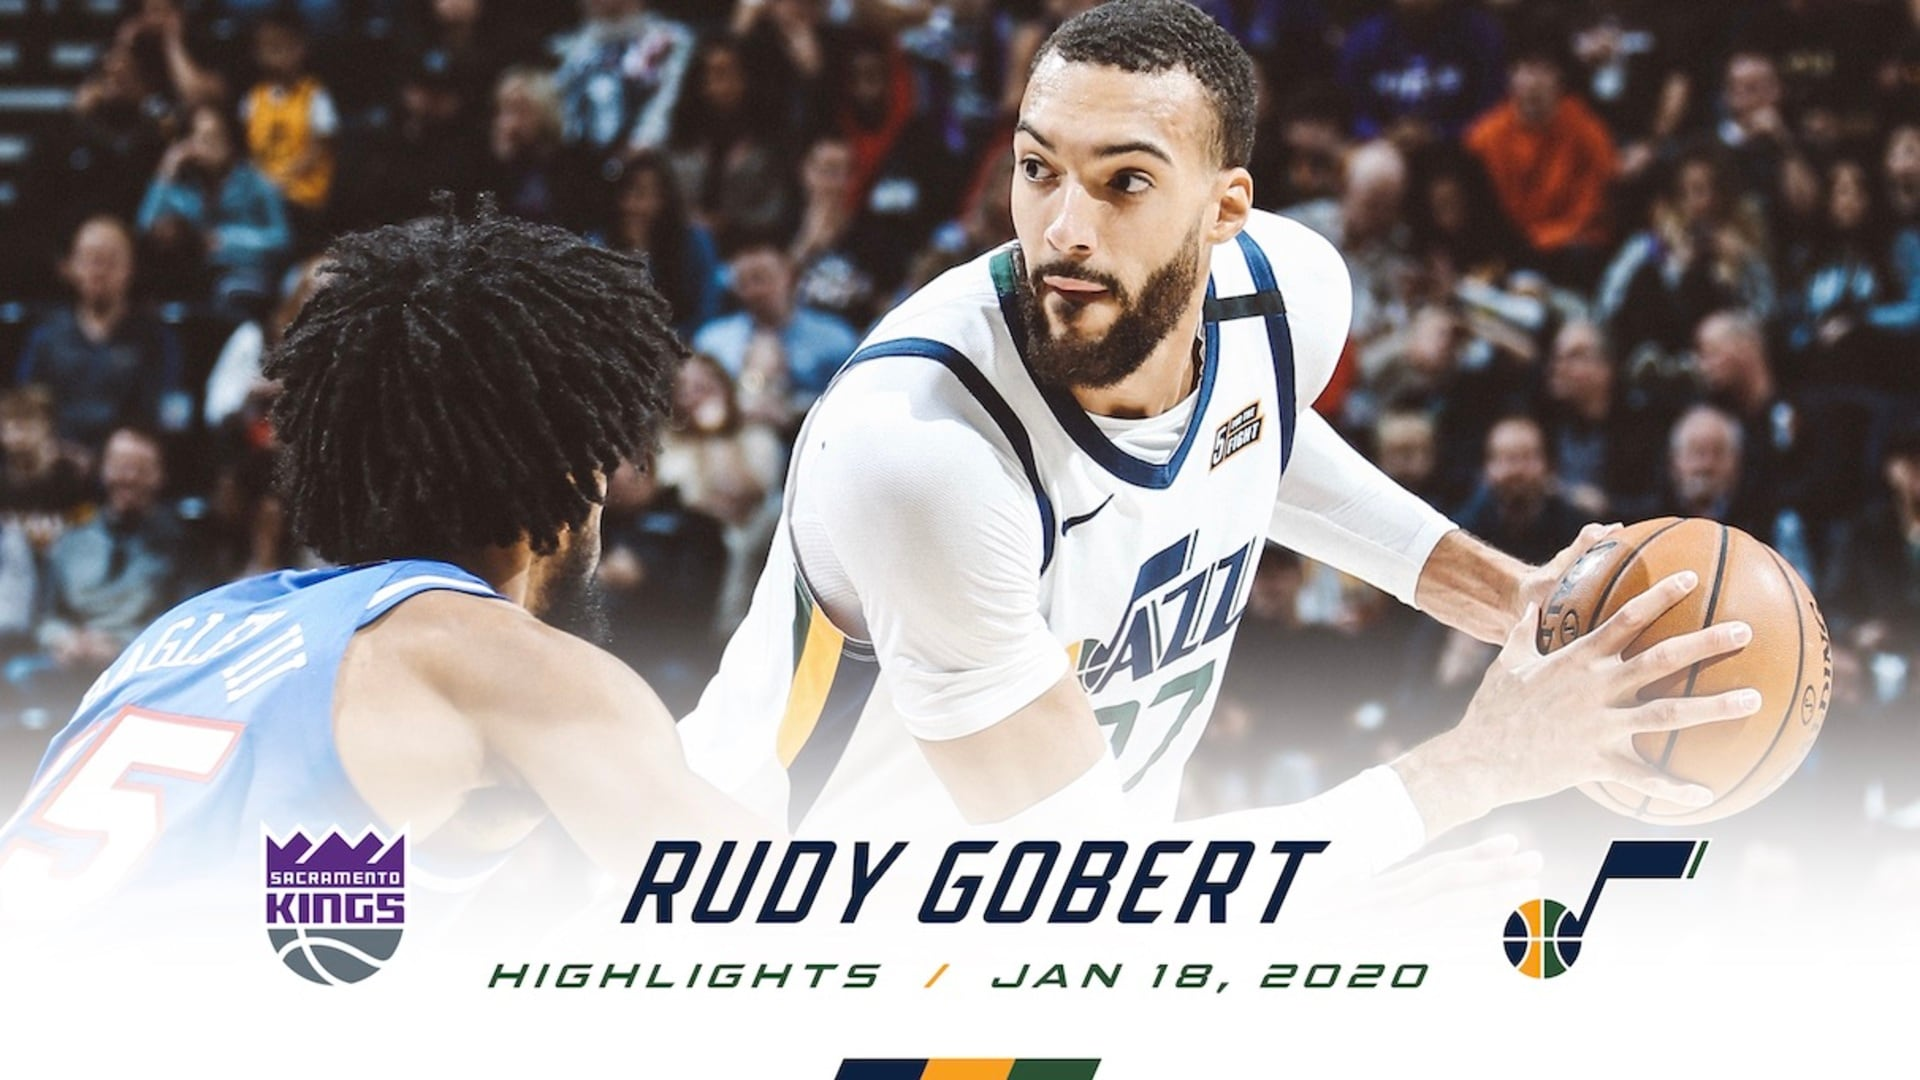 Highlights: Rudy Gobert — 28 points, 15 rebounds